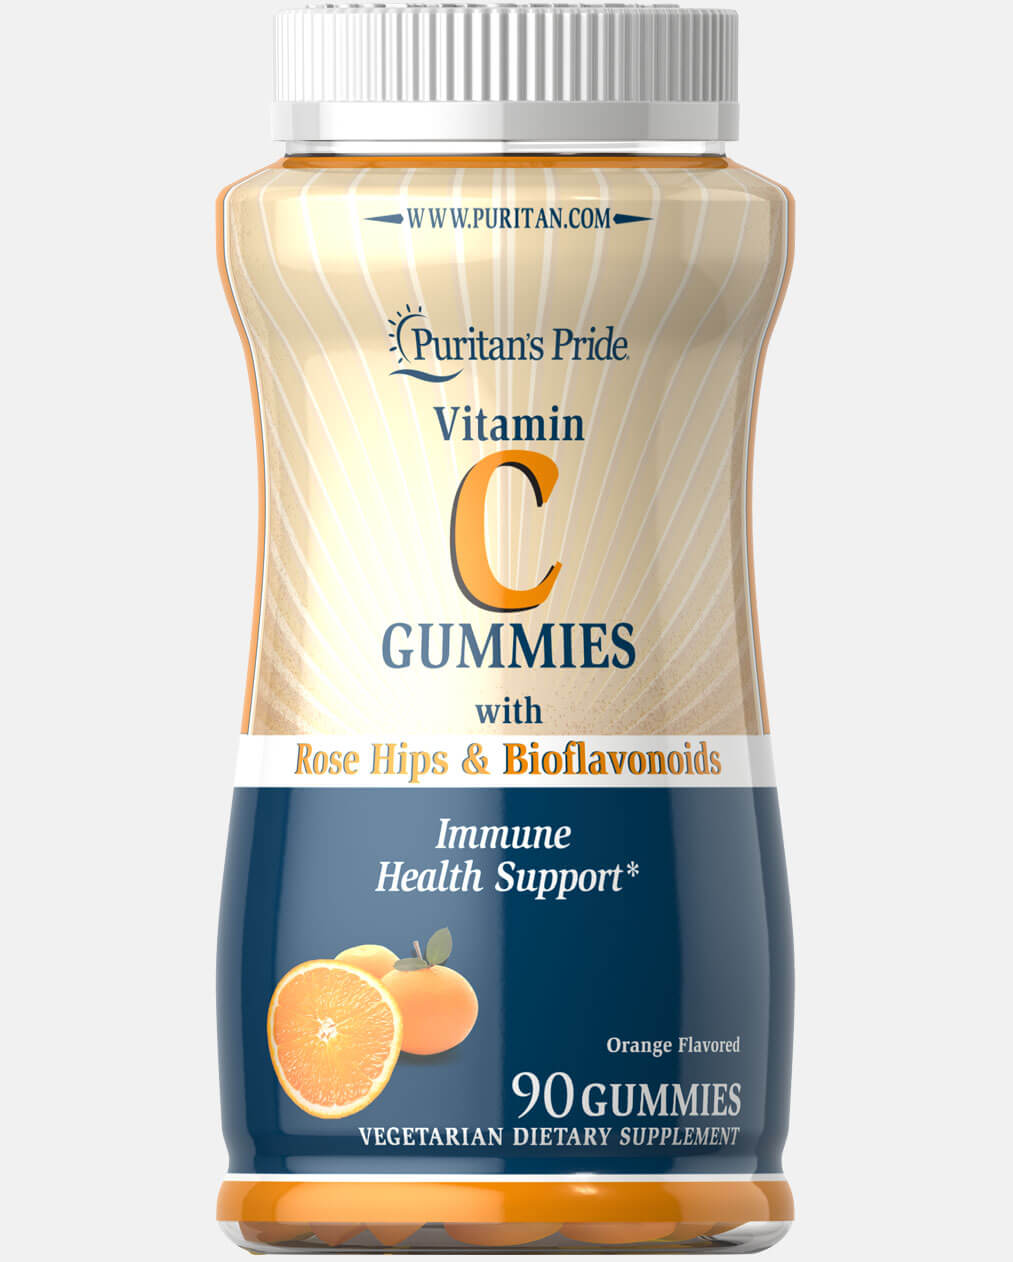 Vitamin C Gummies with Rose Hips & Bioflavonoids